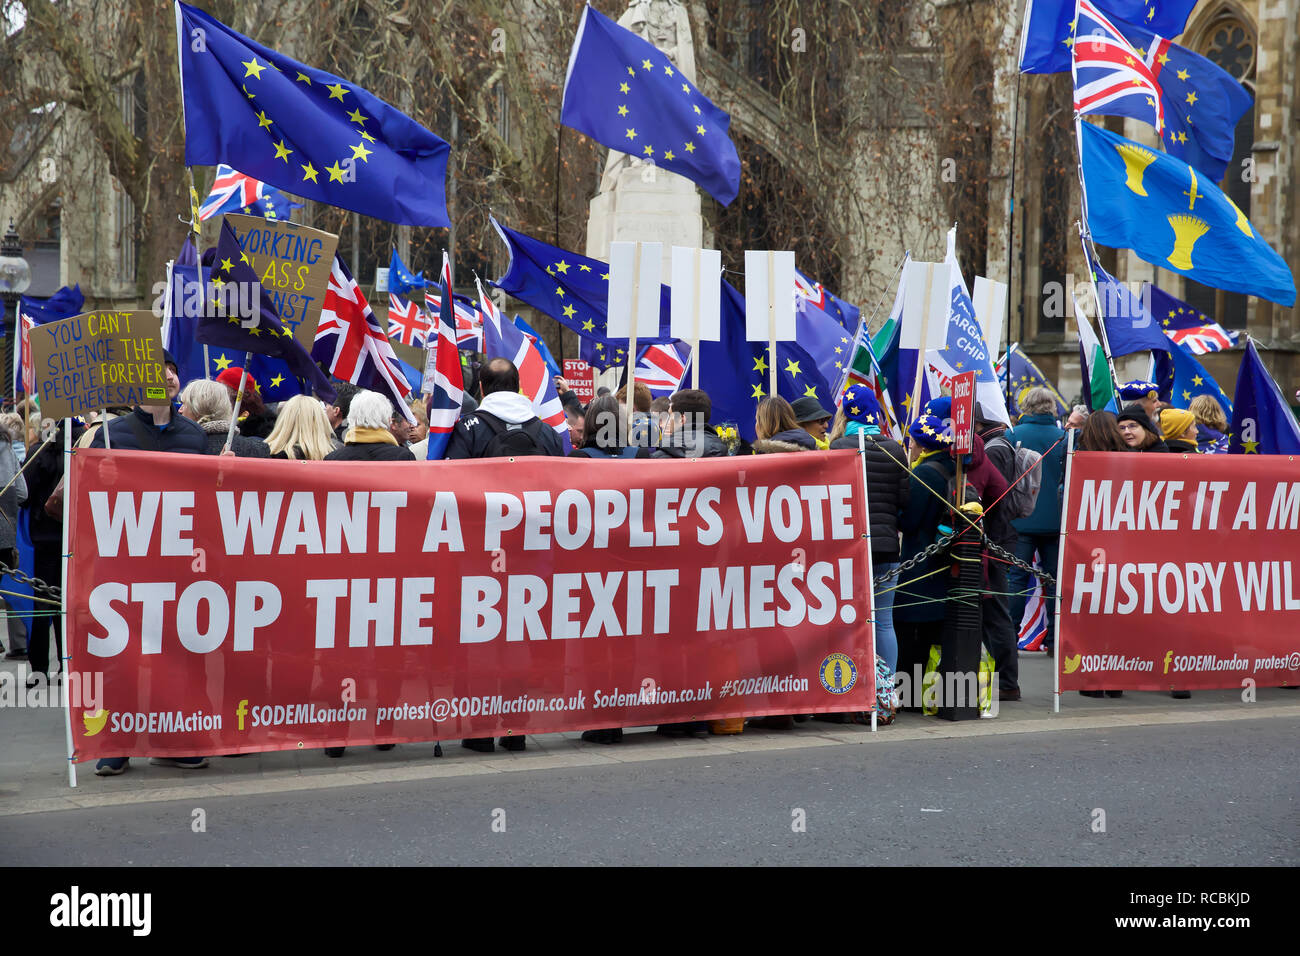 London,UK,15th January 2019,Protestors gather on College Green outside the Houses of Parliament on Brexit vote D-day. The vote takes place this evening despite a series of last-minute appeals to rebel Tory MPs to back her EU withdrawal agreement. A defeat is likely to be followed by Jeremy Corbyn calling a vote of no confidence in the government. Credit: Keith Larby/Alamy Live News - Stock Image